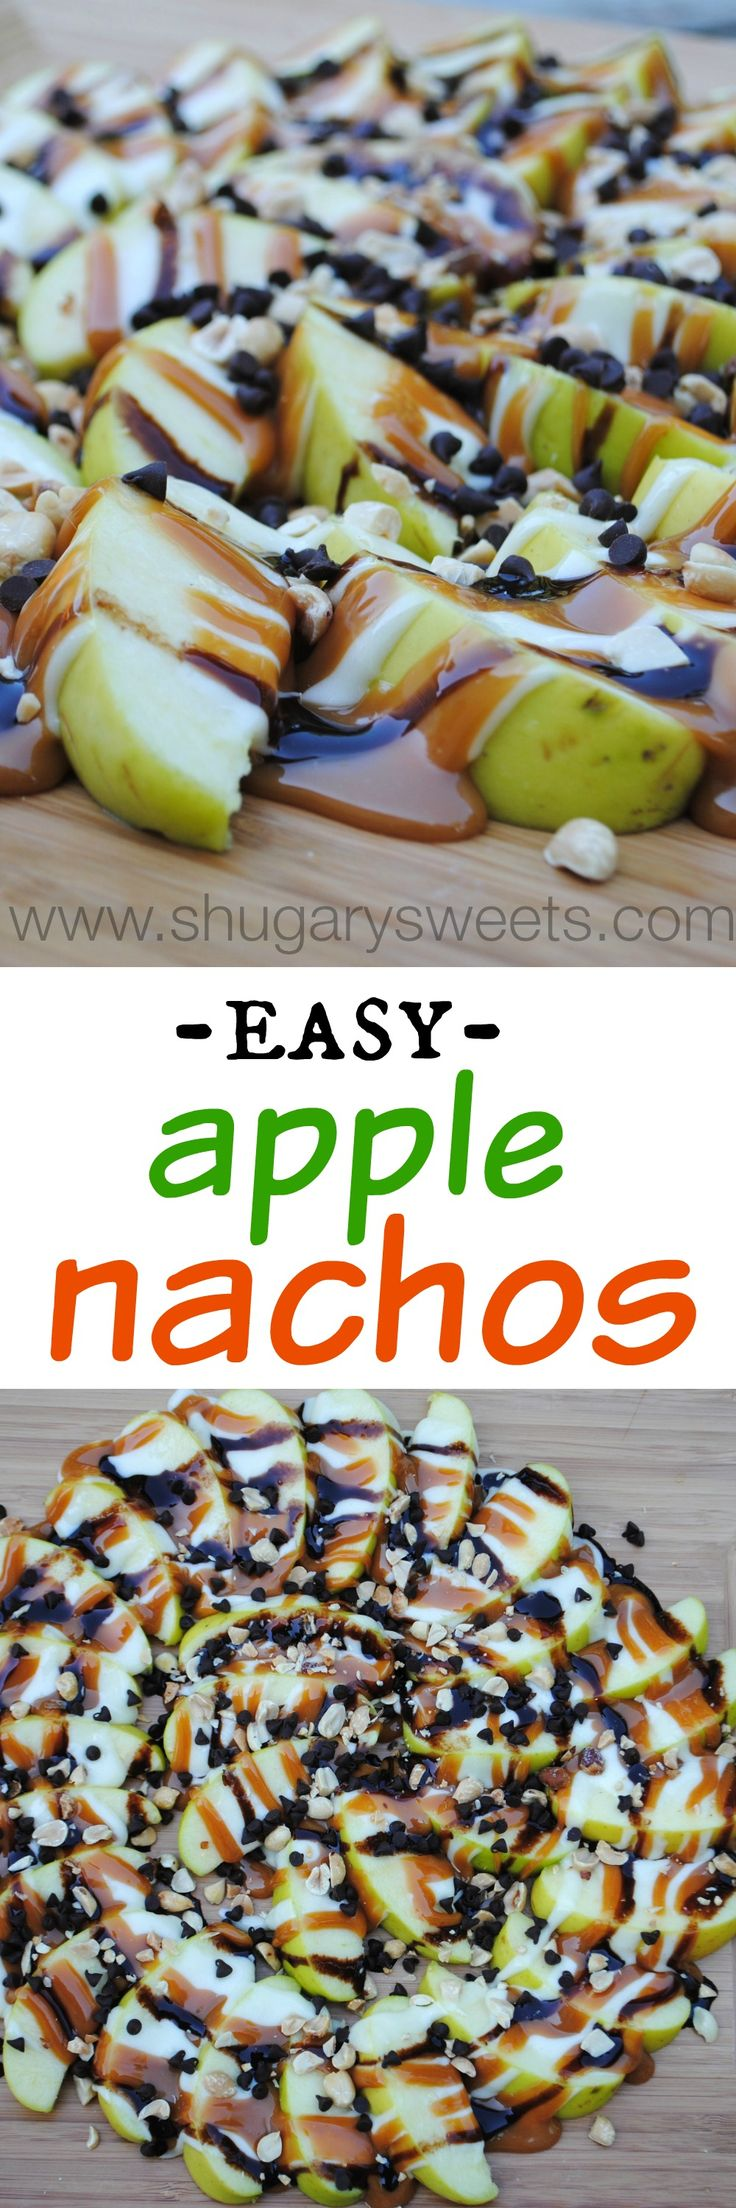 Apple Nachos: delicious layer of sweet apples topped with caramel, chocolate, marshmallow, nuts and chocolate morsels.